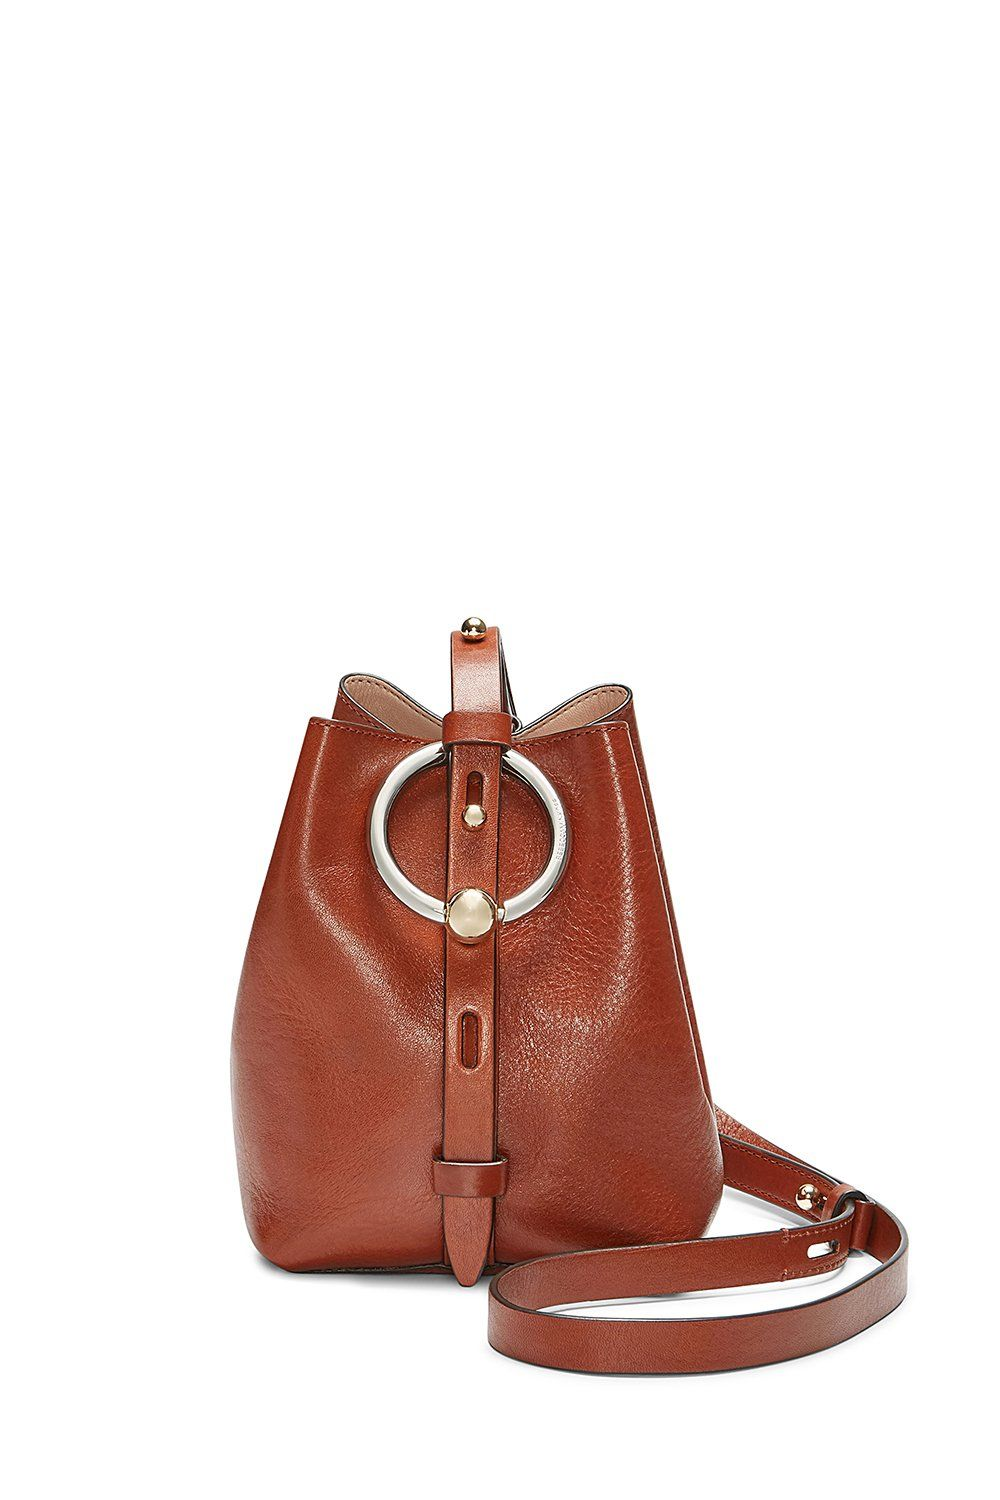 5ce5b09301aef1 Kate Mini Bucket Bag in 2019 | purses | Bucket Bag, Bags, Bucket